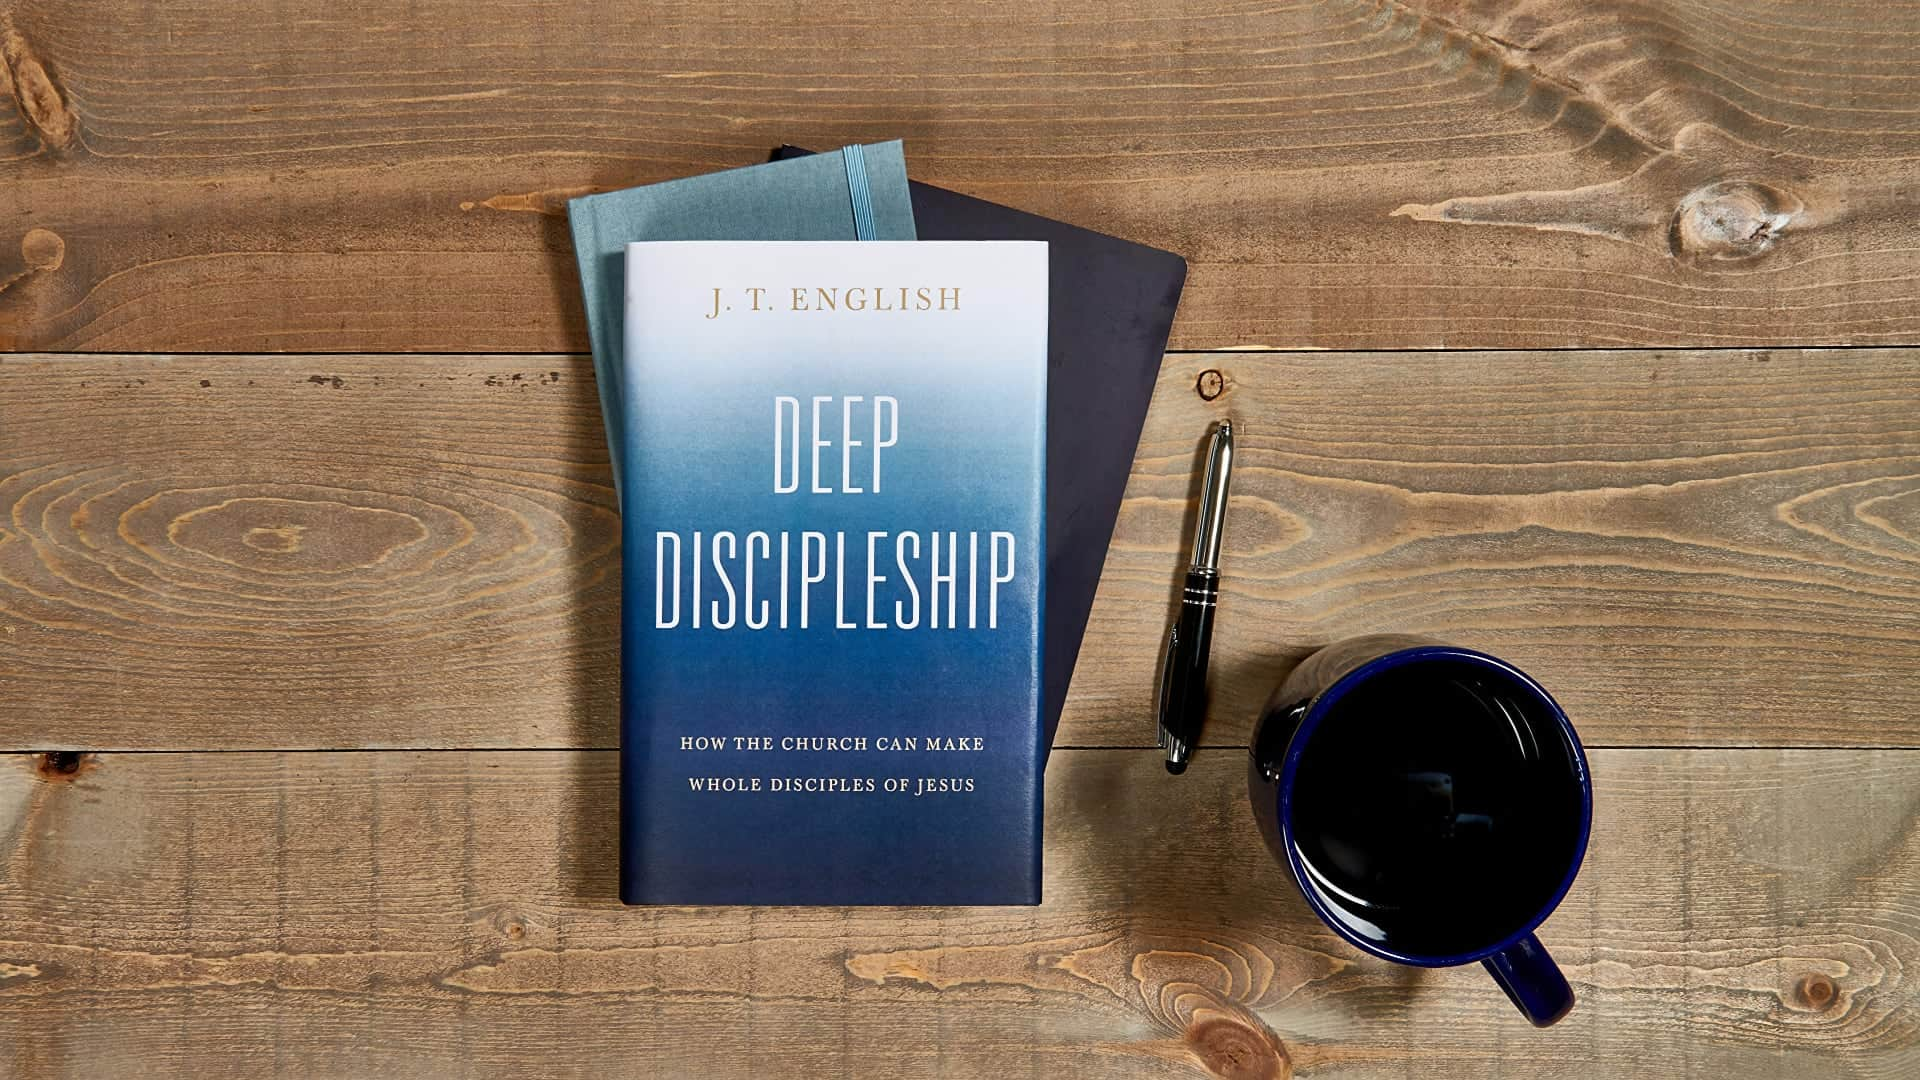 Deep Discipleship with J.T. English